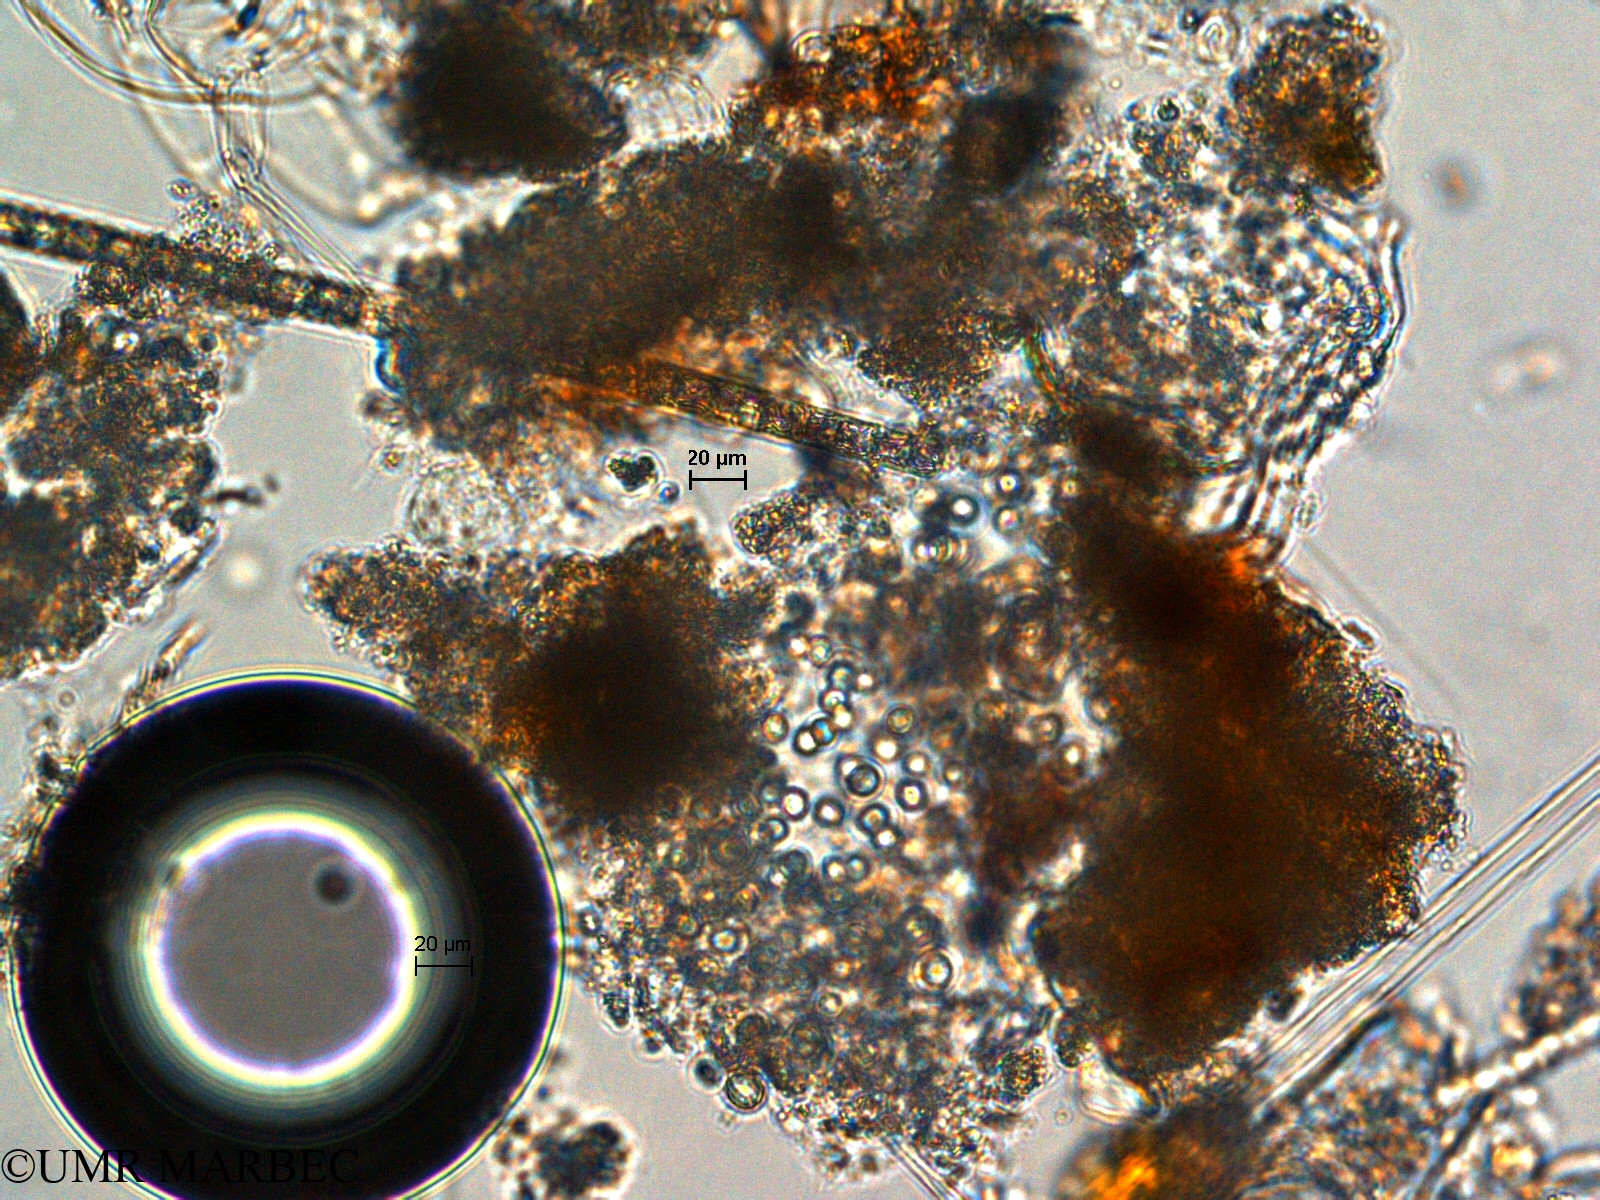 phyto/Scattered_Islands/europa/COMMA April 2011/Aphanocapsa sp5 (ancien Chroococcus sp2 -1)(copy).jpg